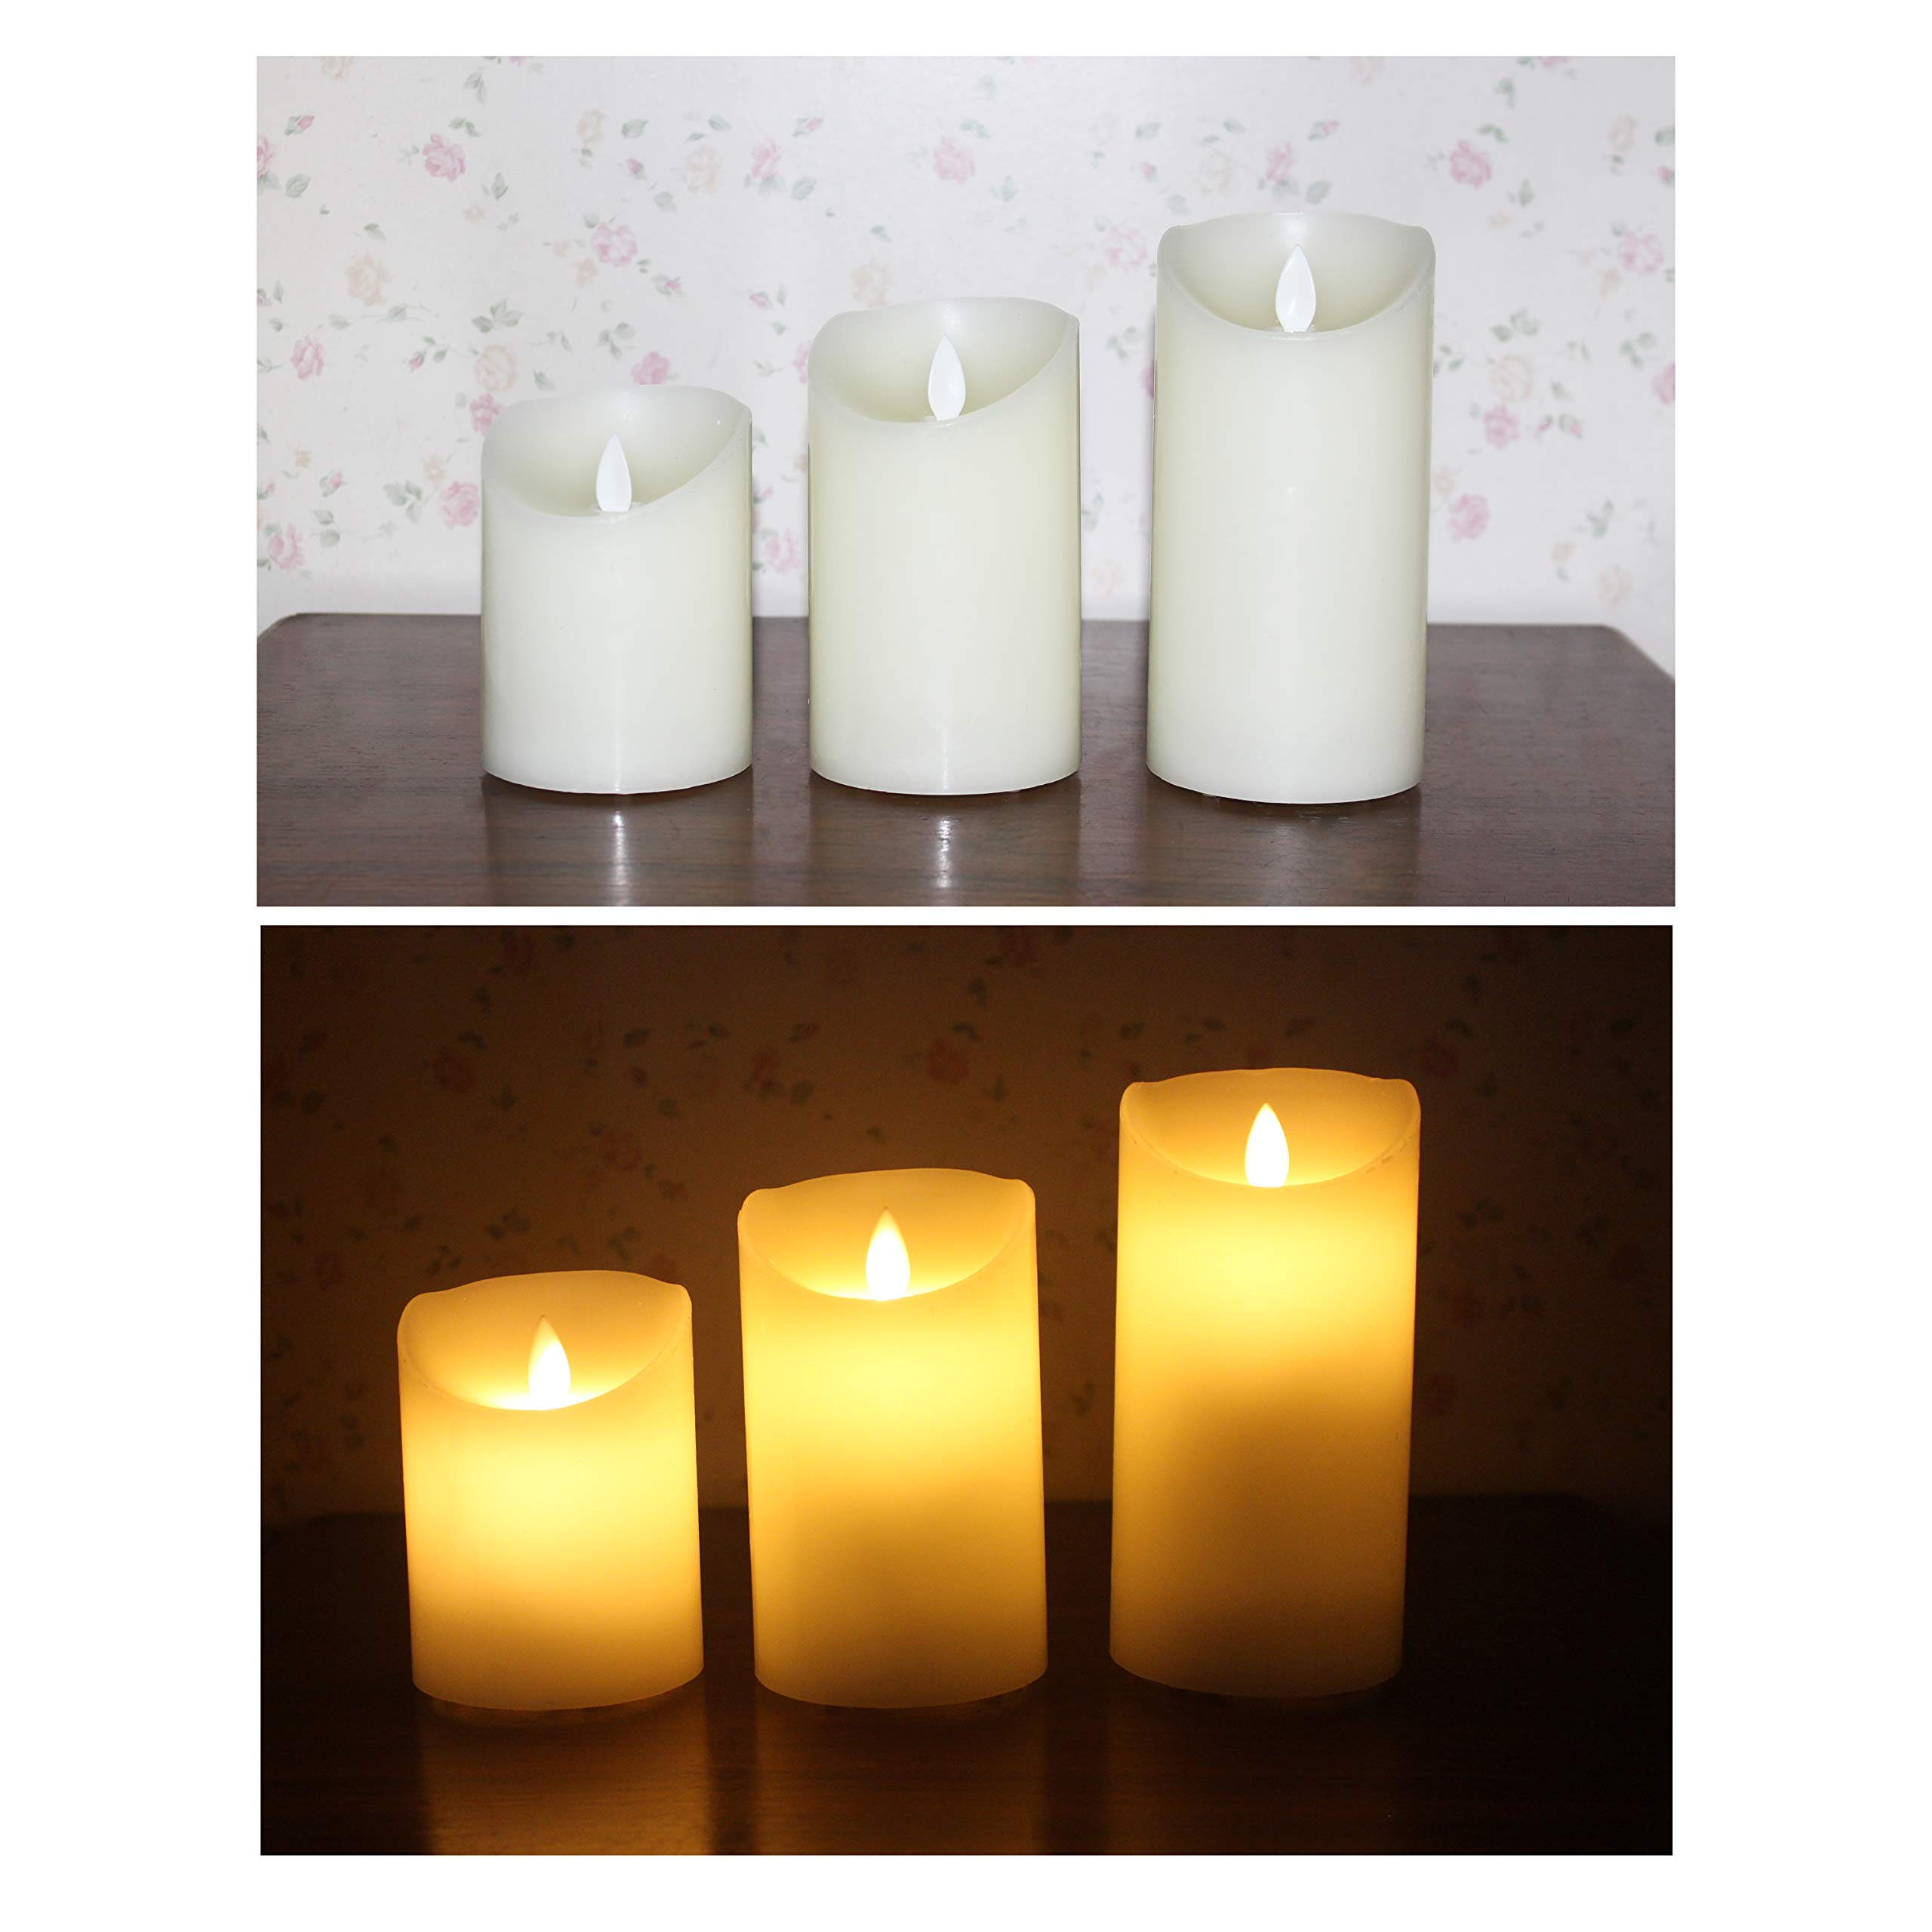 Flameless Candles Electric with Rechargeable Battery (Autbye 2018 Advanced Edition) Extra Bright Ivory 3 Pack 4'' 5'' 6'' Dripless Real Wax Pillars LED Smart Candle Flickering with 10-Key Remote Control by Autbye (Image #5)